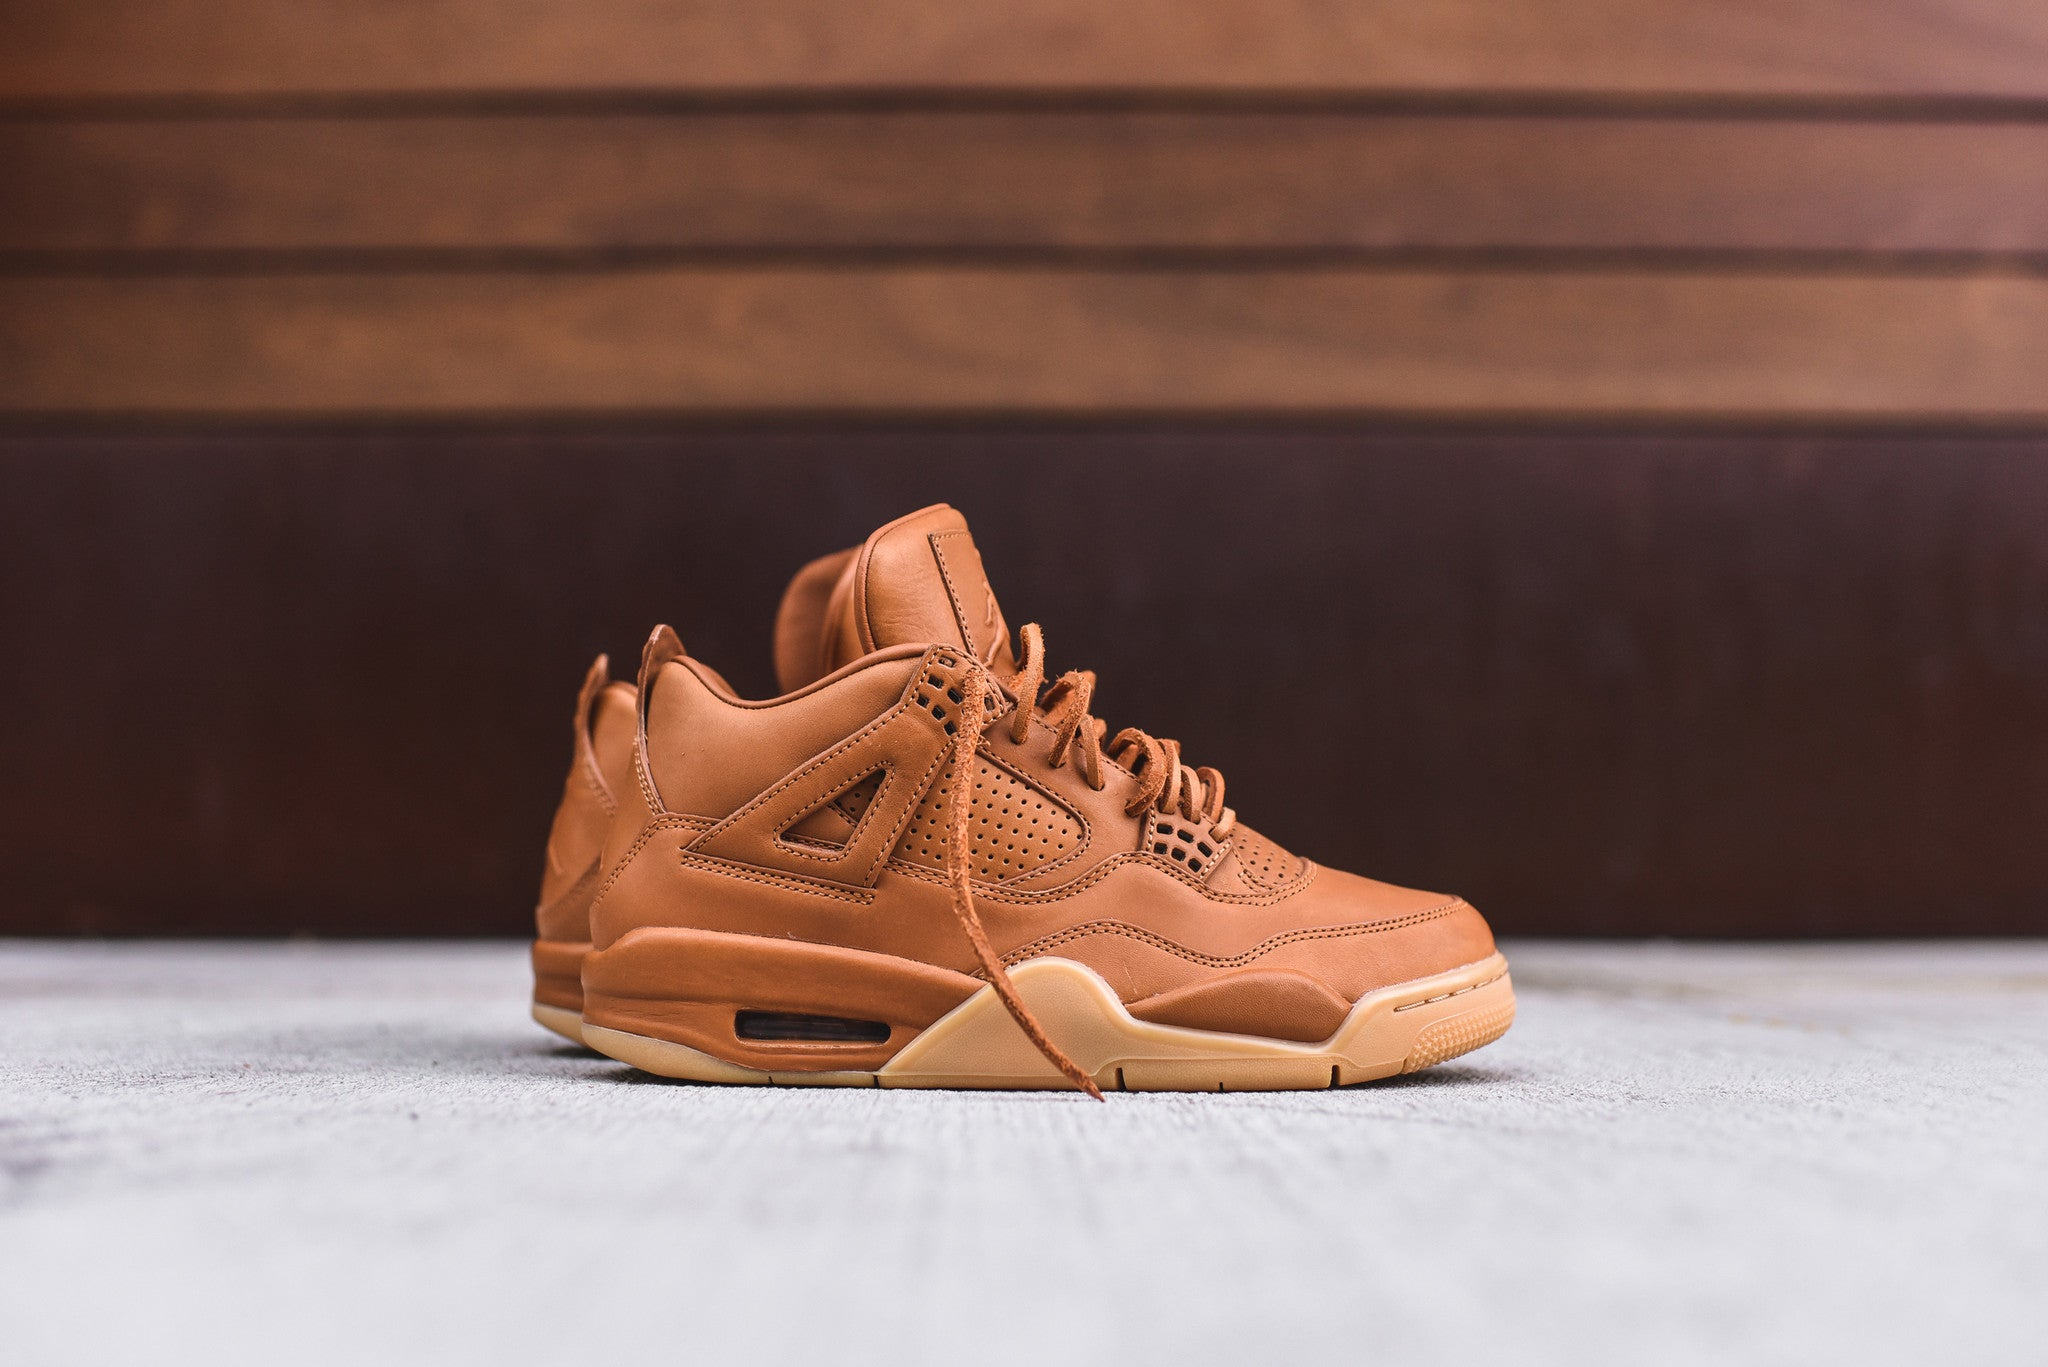 Nike Air Jordan 4 Retro PRM - Ginger